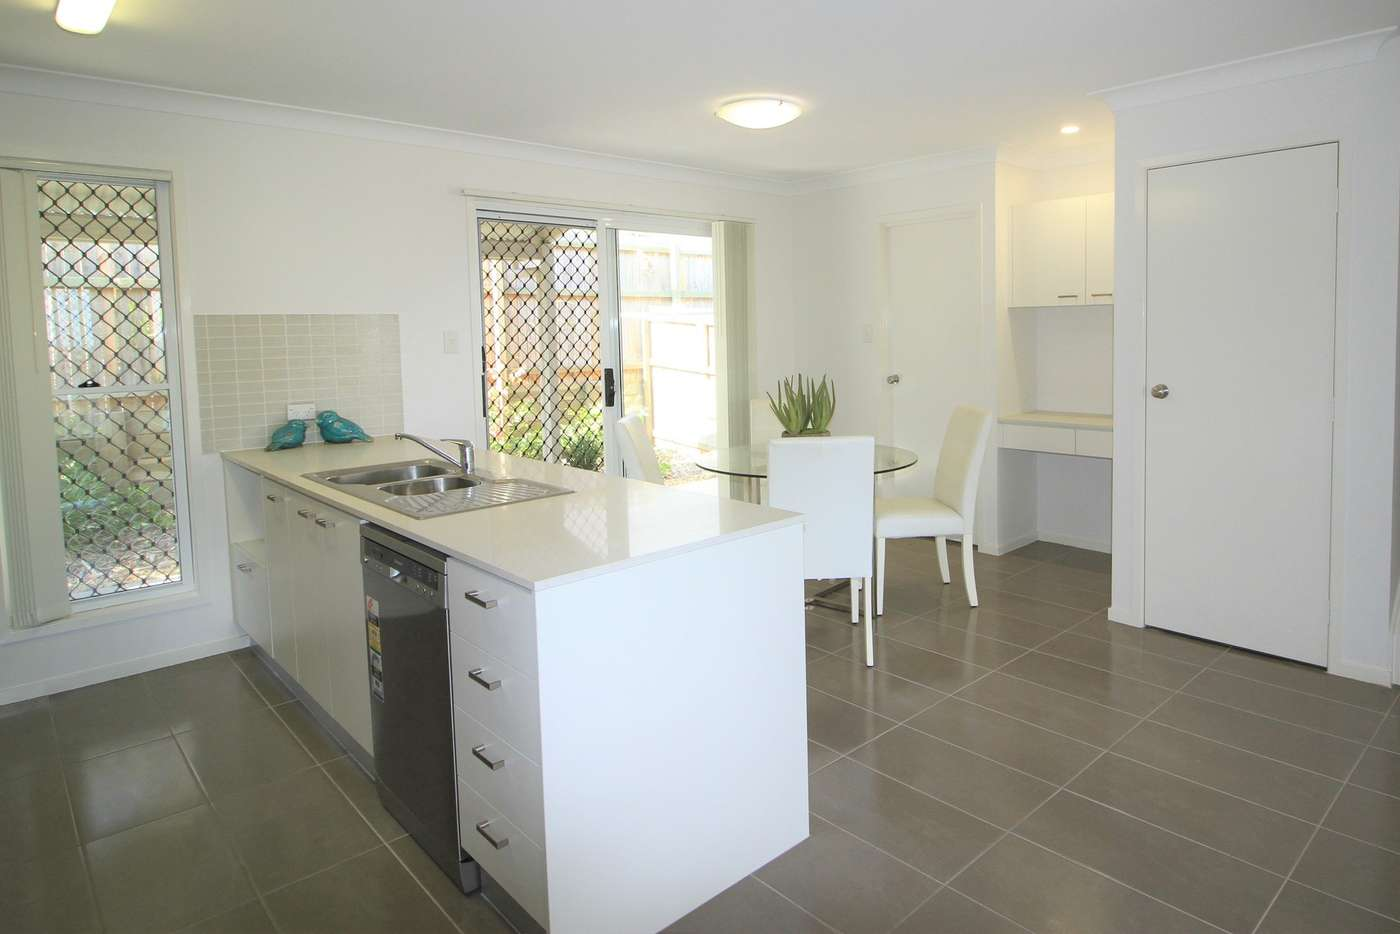 Fifth view of Homely townhouse listing, 5/12 KIMBERLEY CLOSE, Redbank Plains QLD 4301